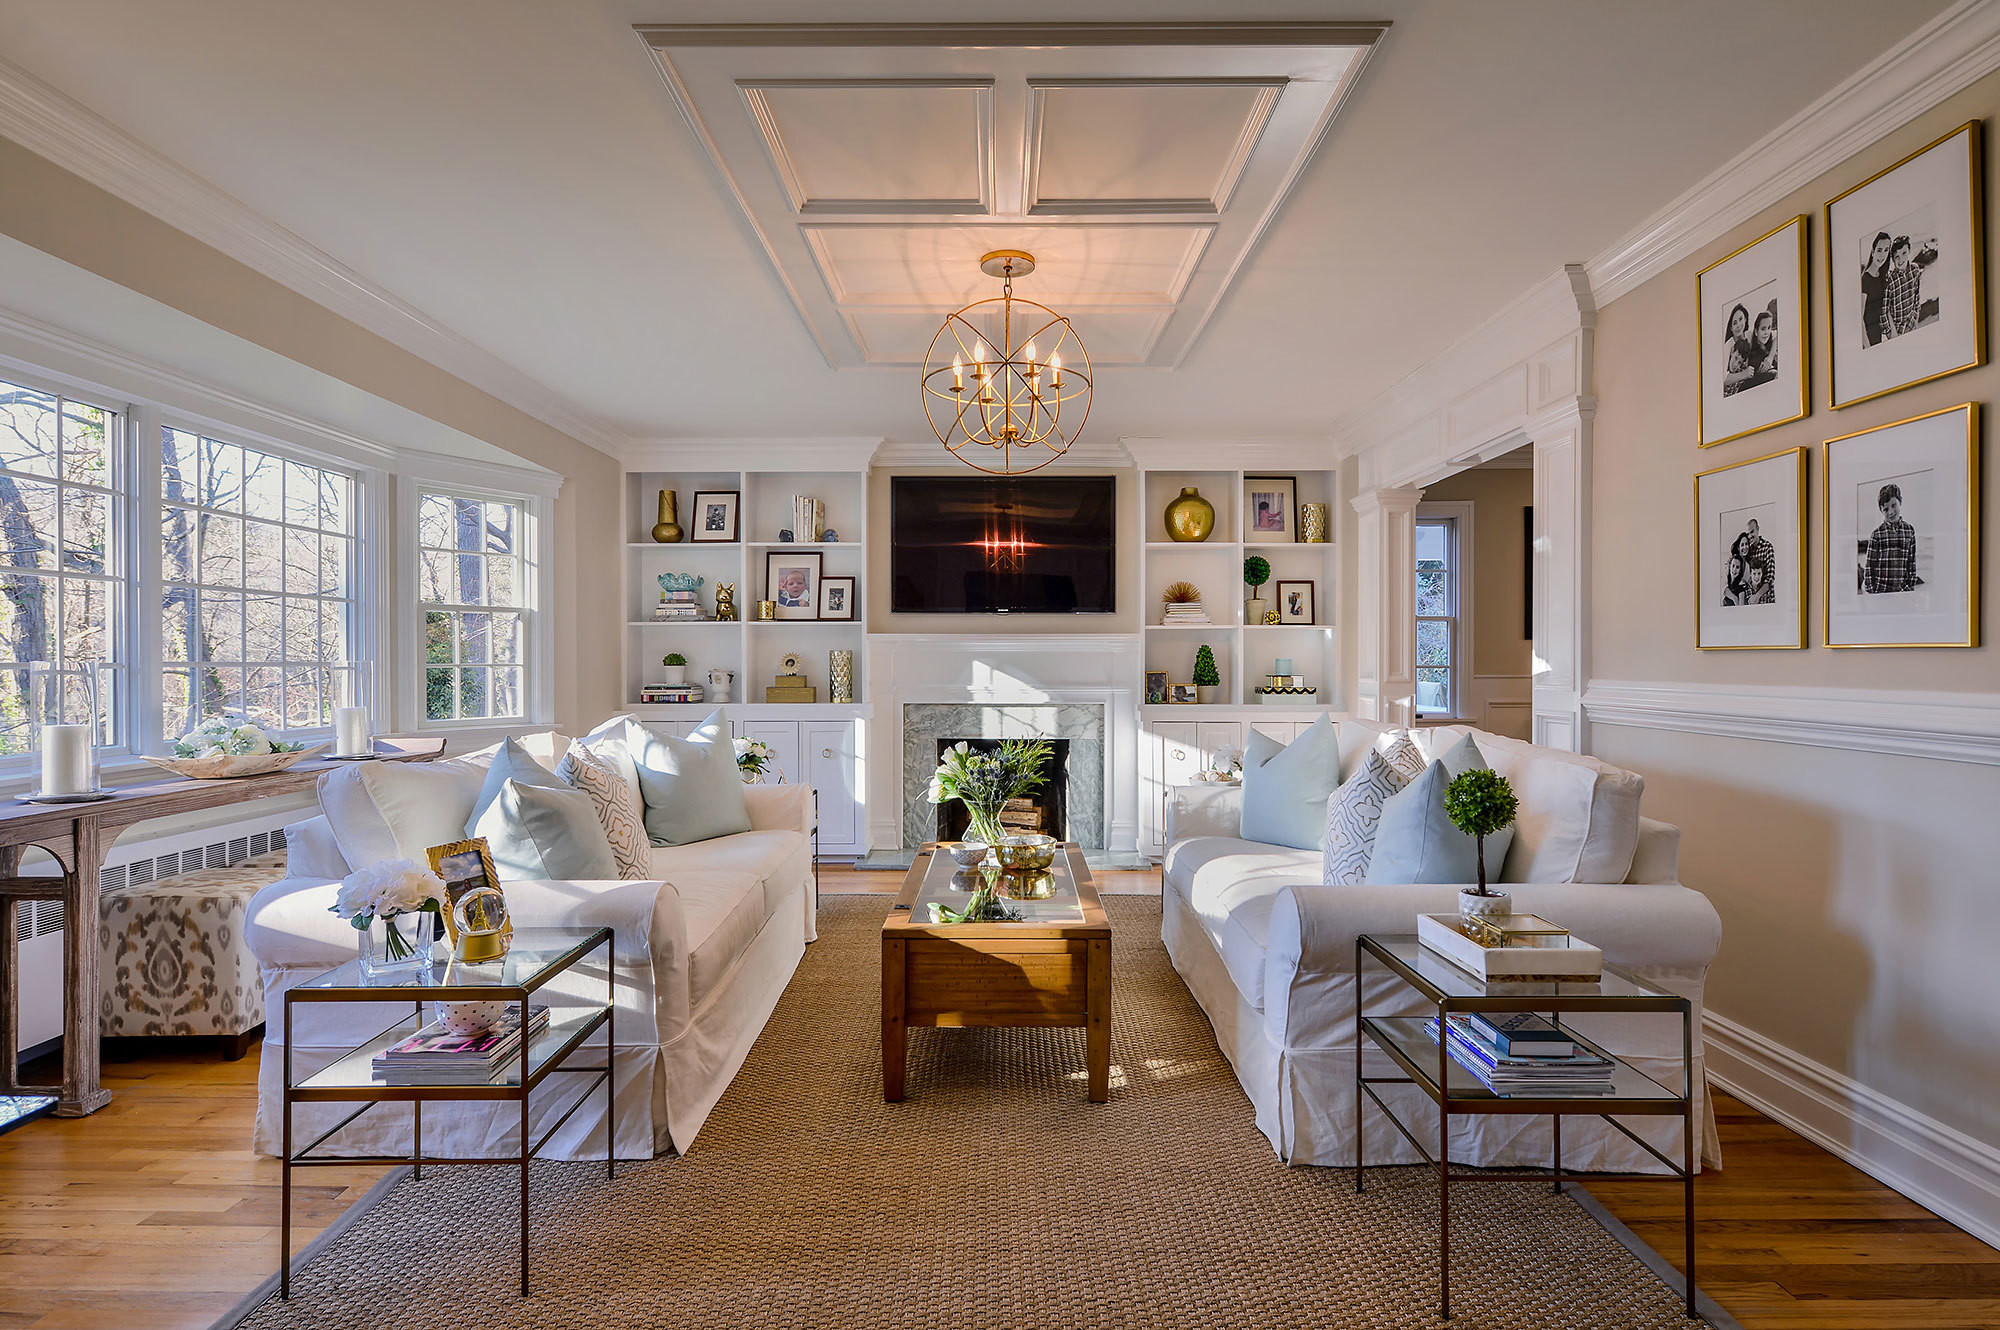 with the help of interior designer jeanne campana fashion designer kara mendelsohn embraced a serene - Home Remodel Designer